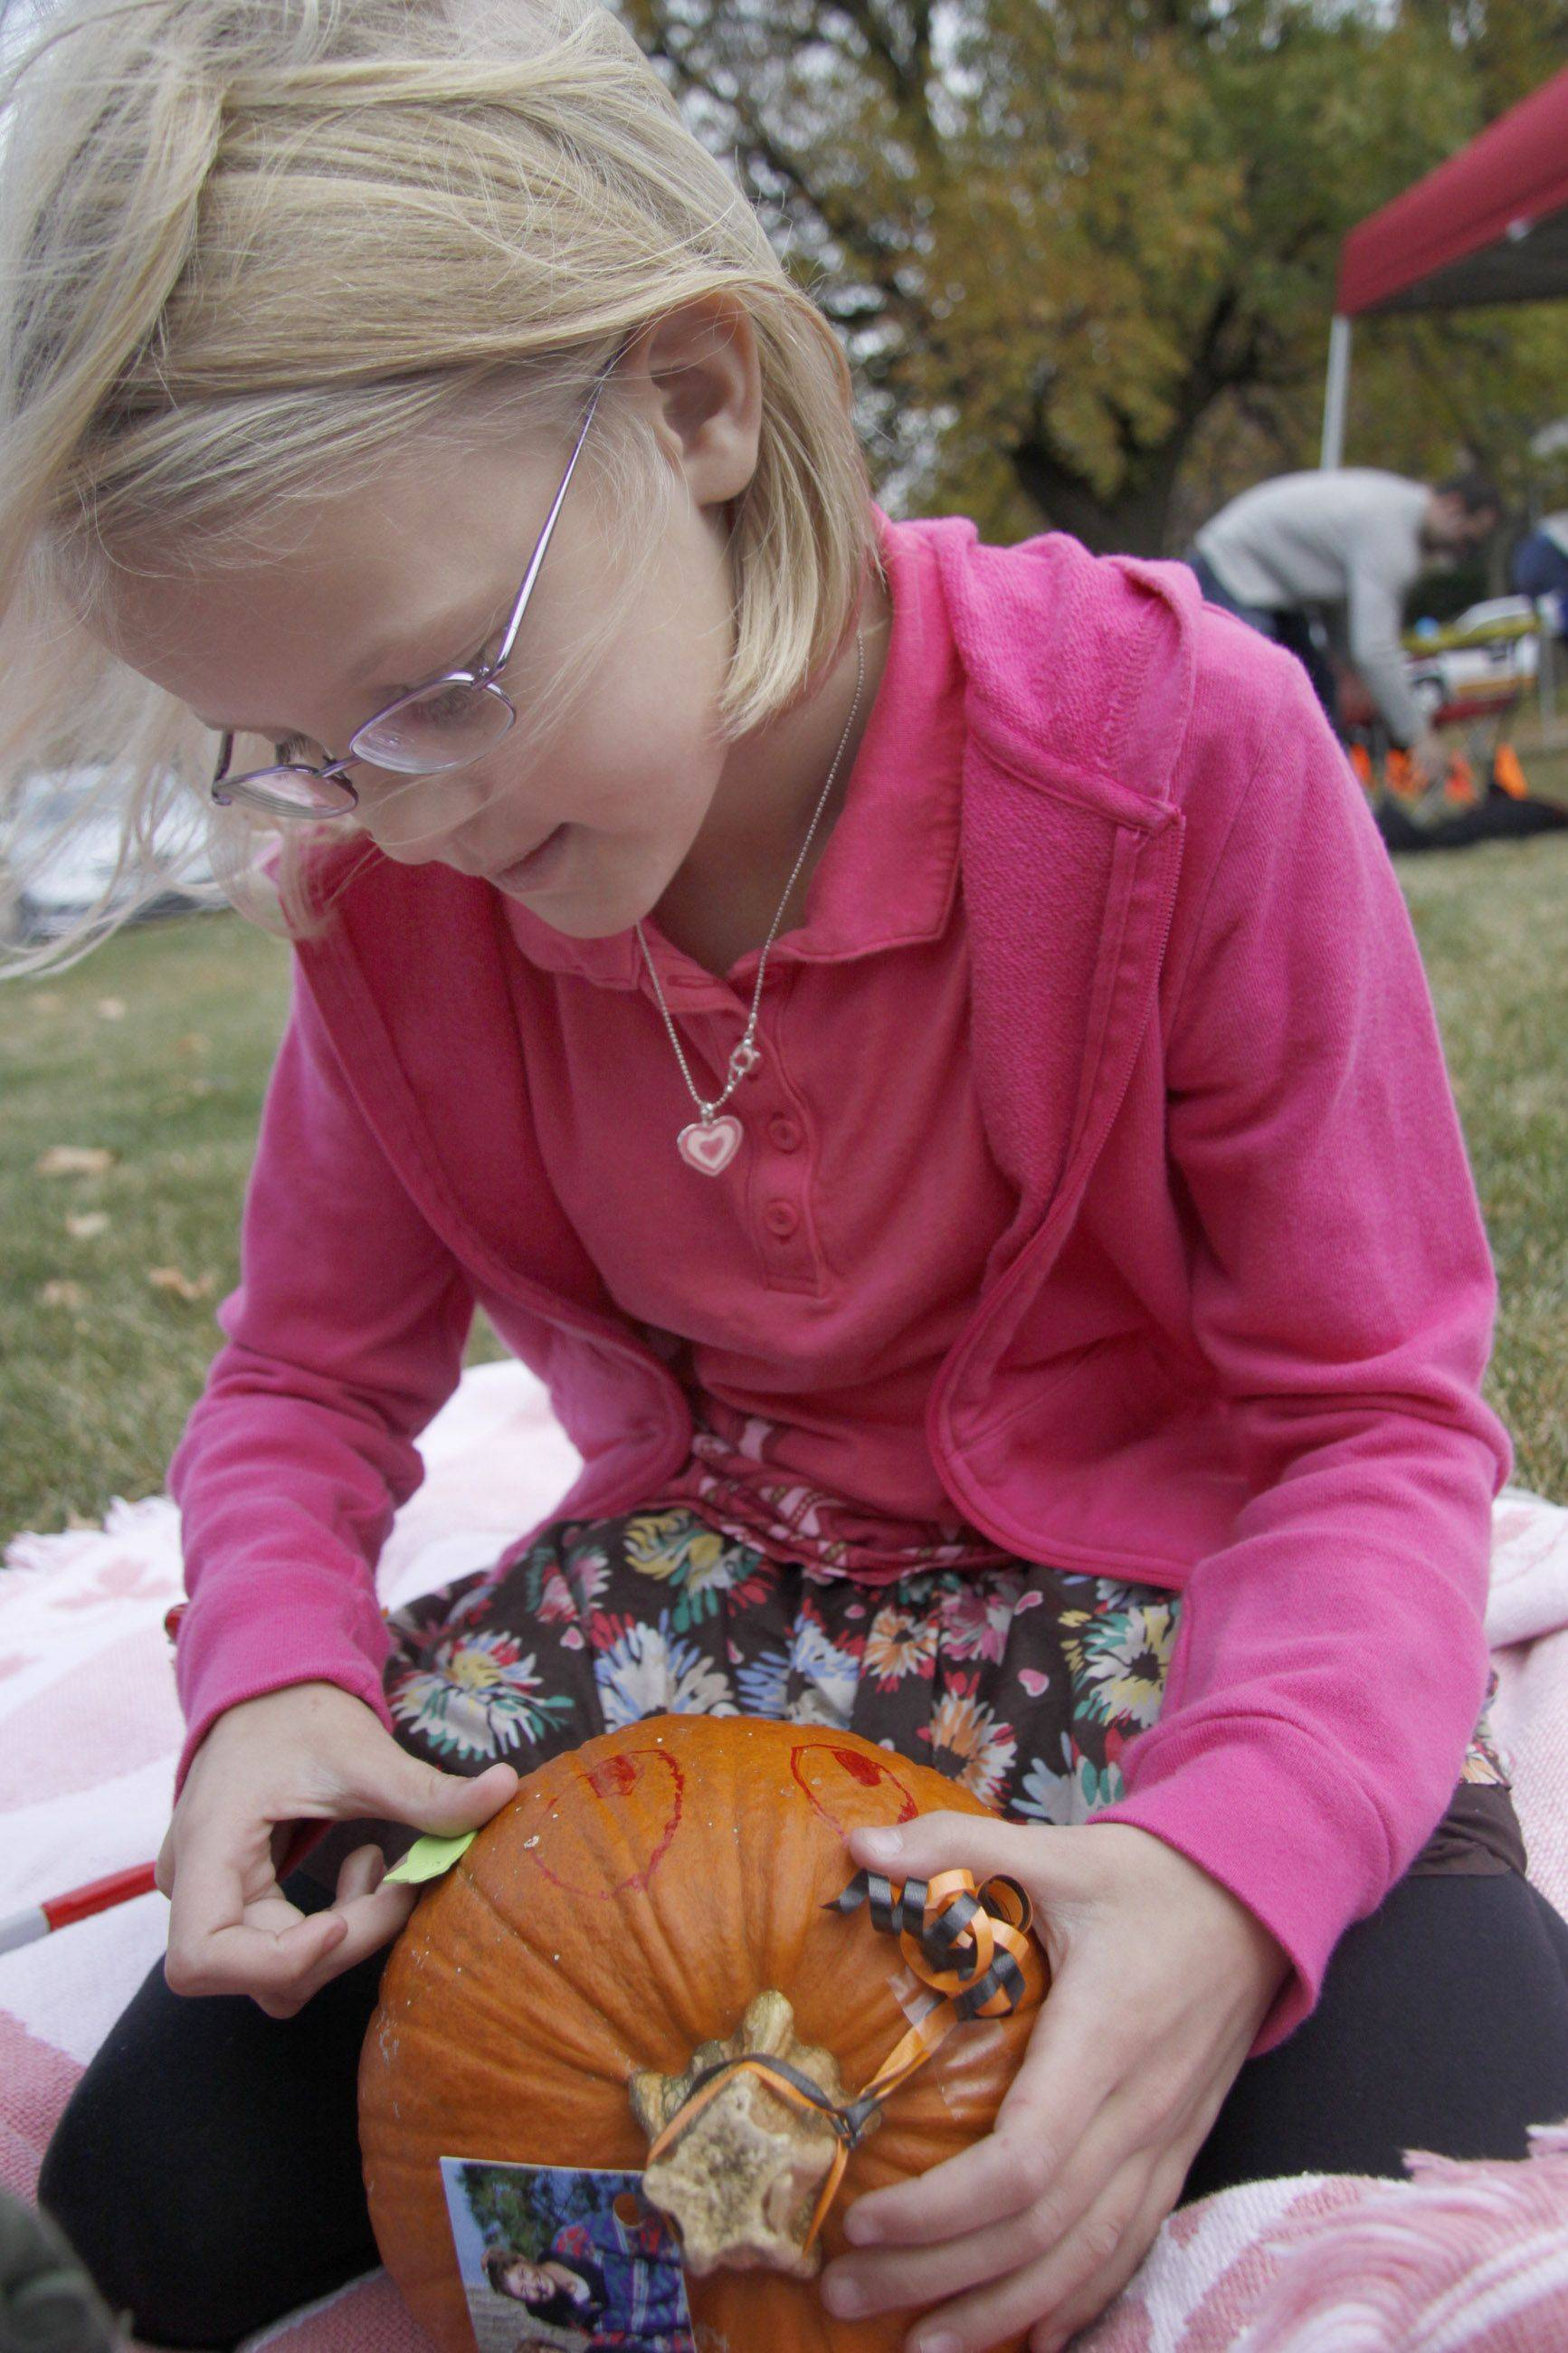 Sydney Alpers, 8, of Wheaton decorates the free pumpkin at Make a Difference Day in Wheaton.